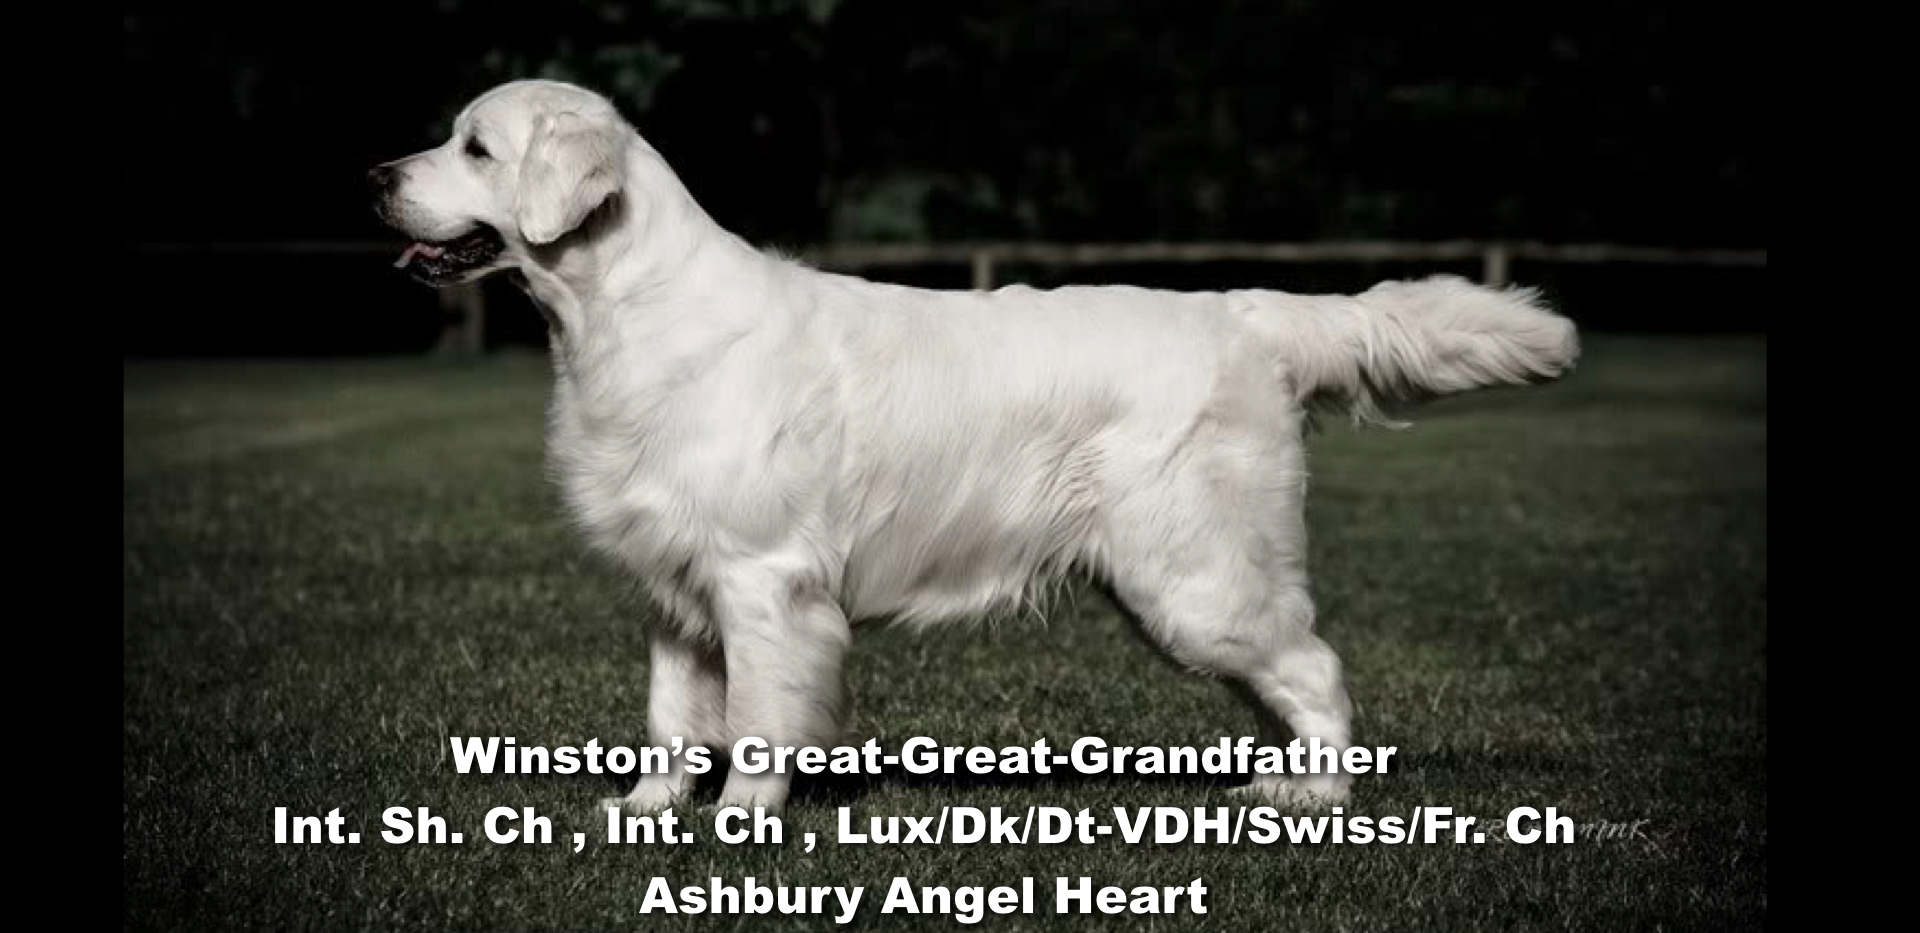 Winston-Pictoral Pedigree.007.jpeg